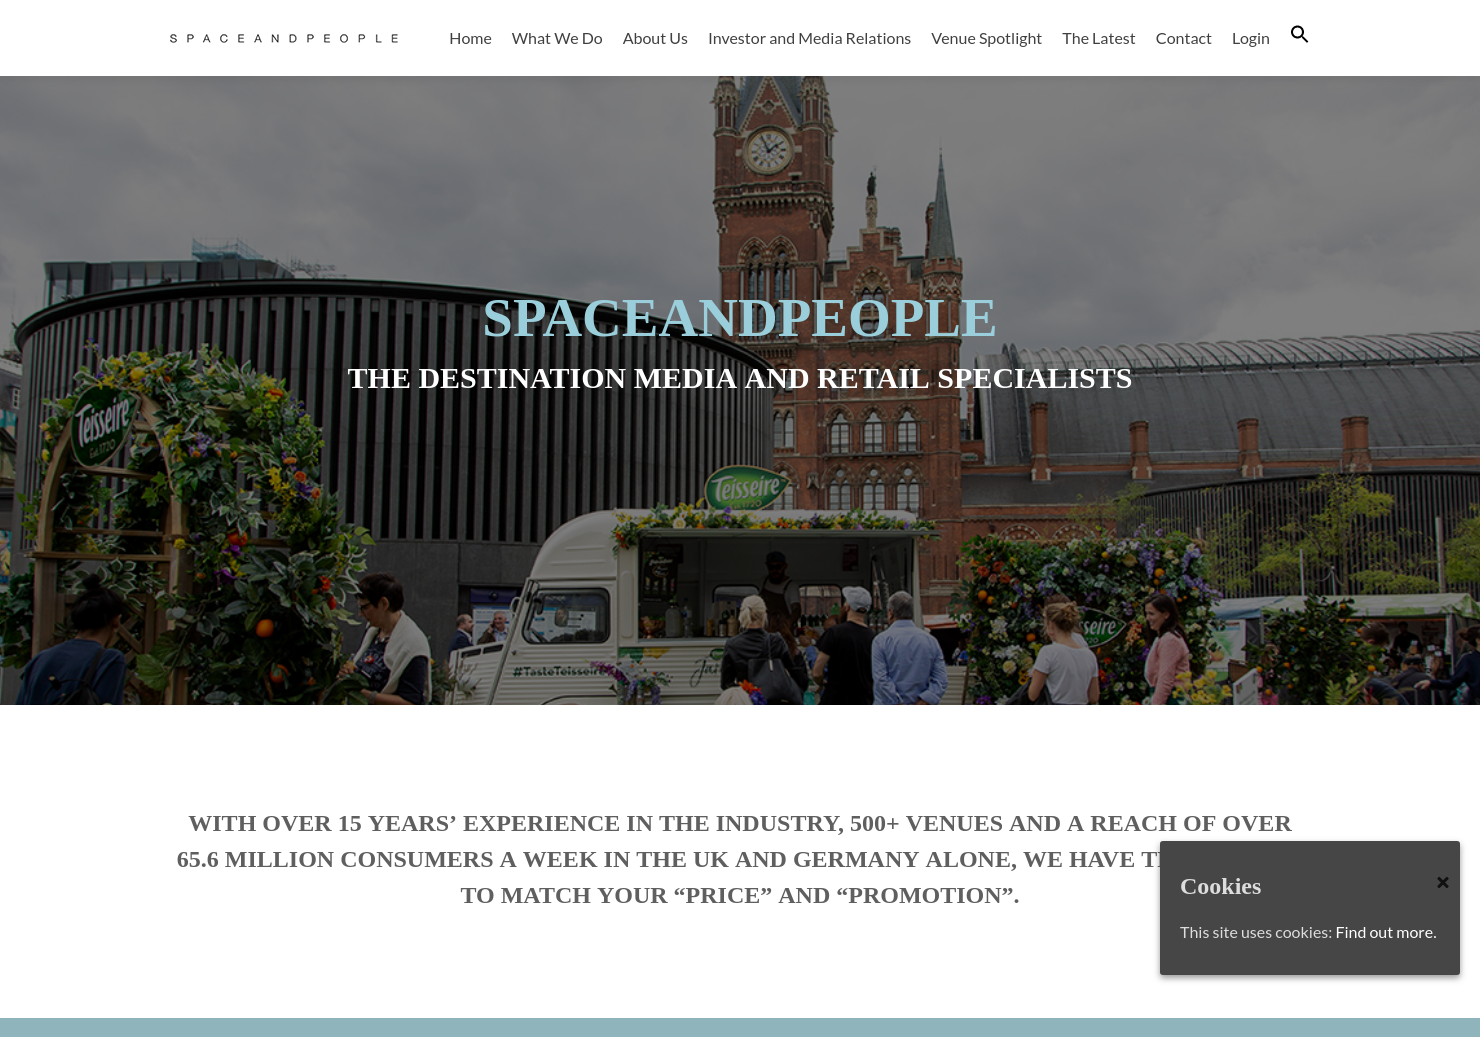 SpaceandPeople Home Page